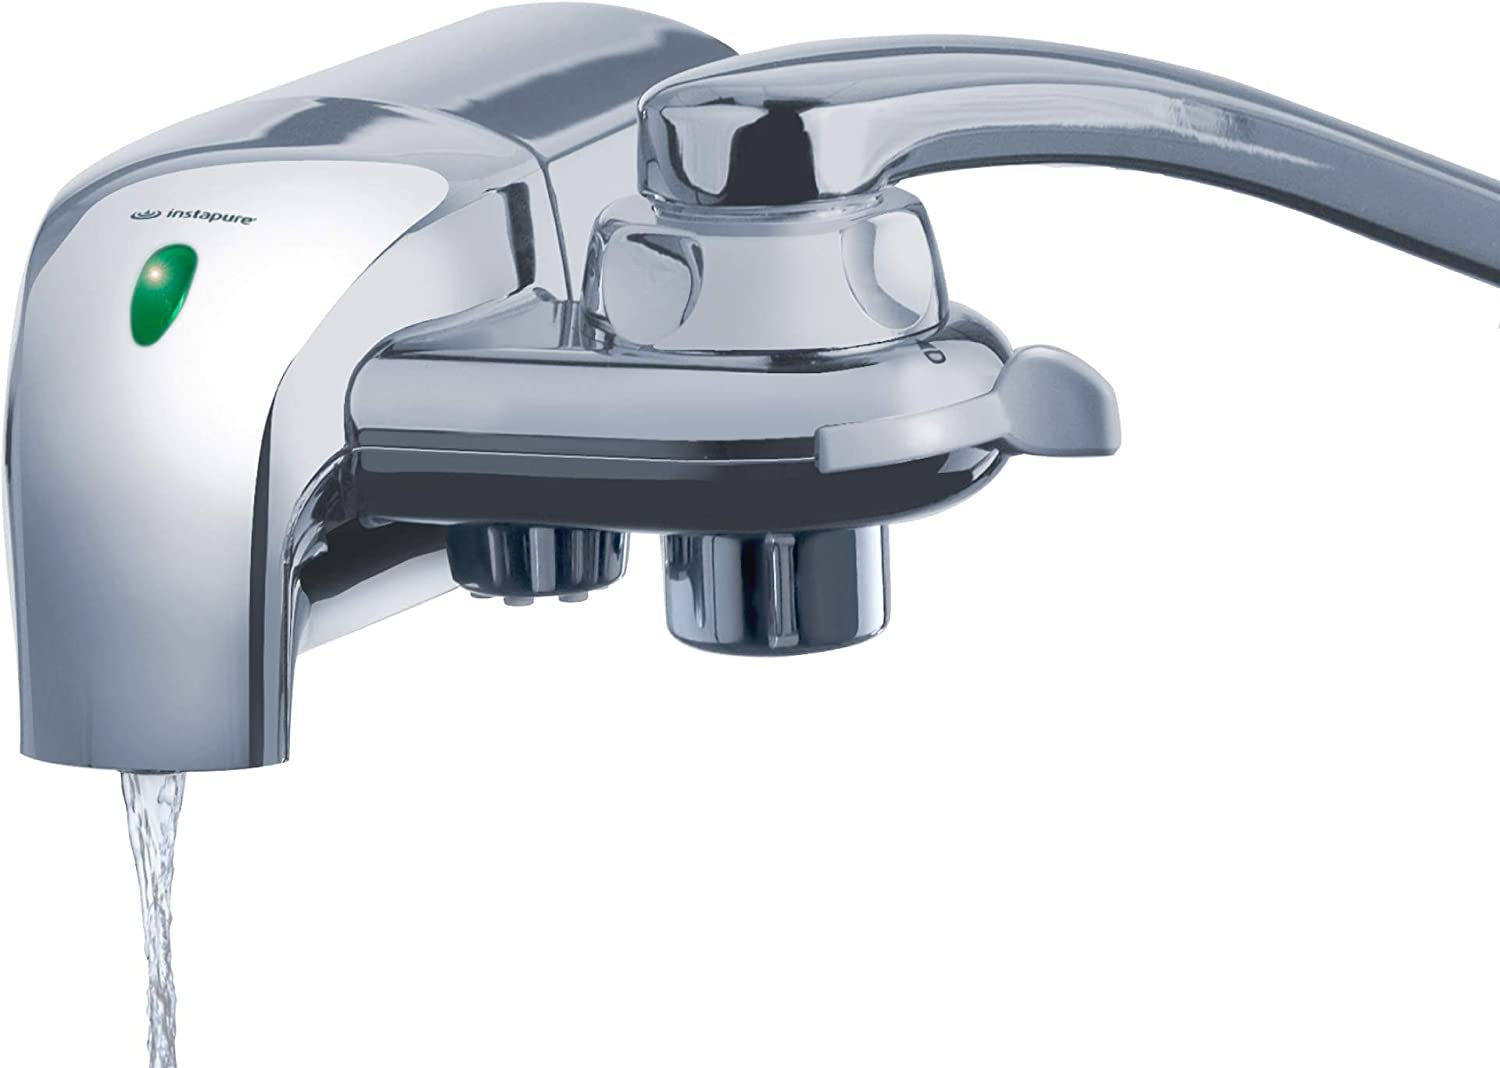 Instapure F8 Ultra Tap Water Filtration System (Chrome), Tested and Certified to NSF/ANSI 42 and 53 For Maximum Reductions